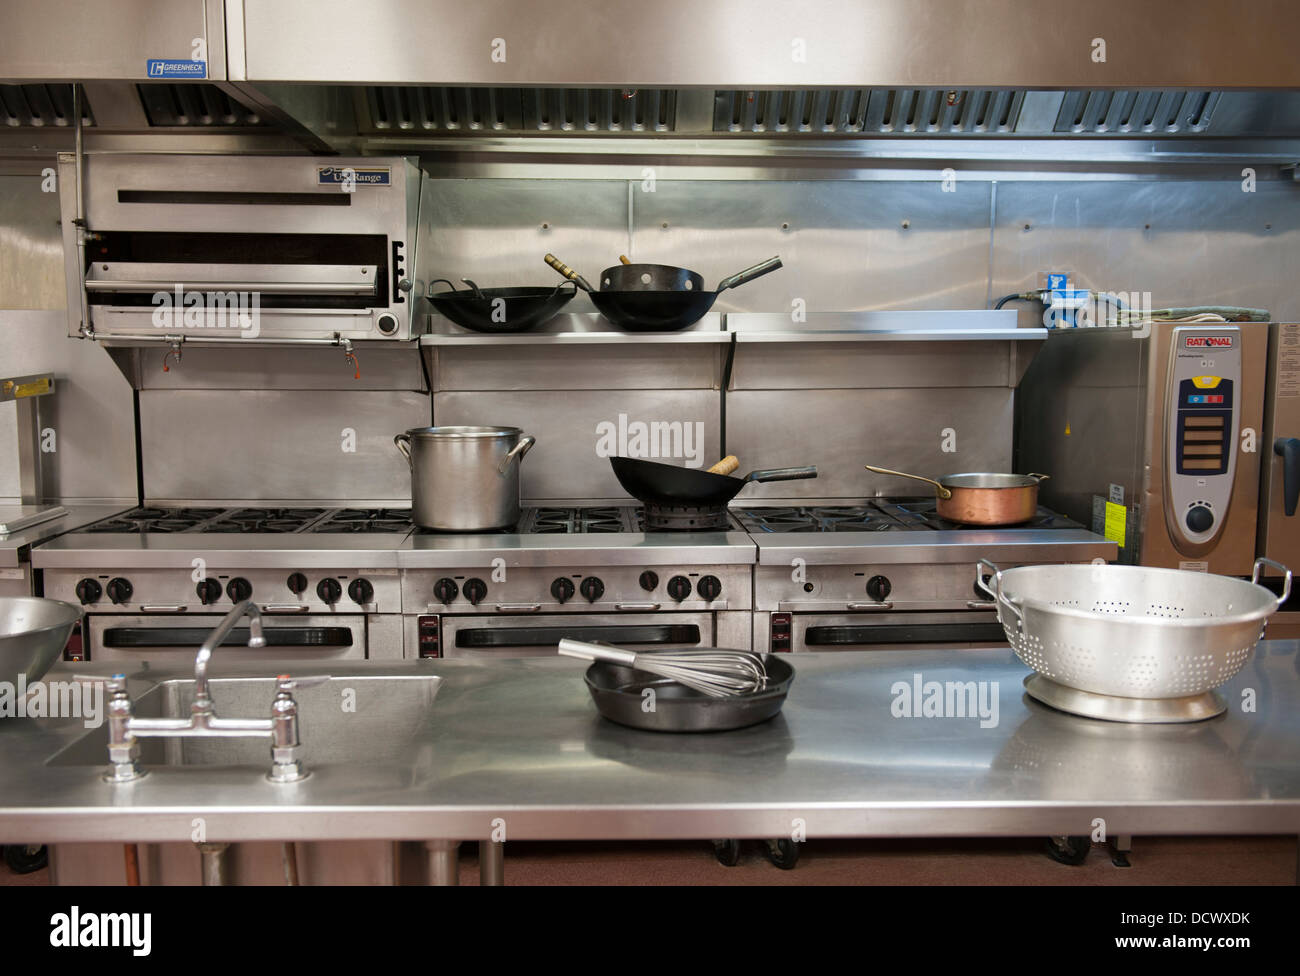 Chef's kitchen with pots and pans - Stock Image